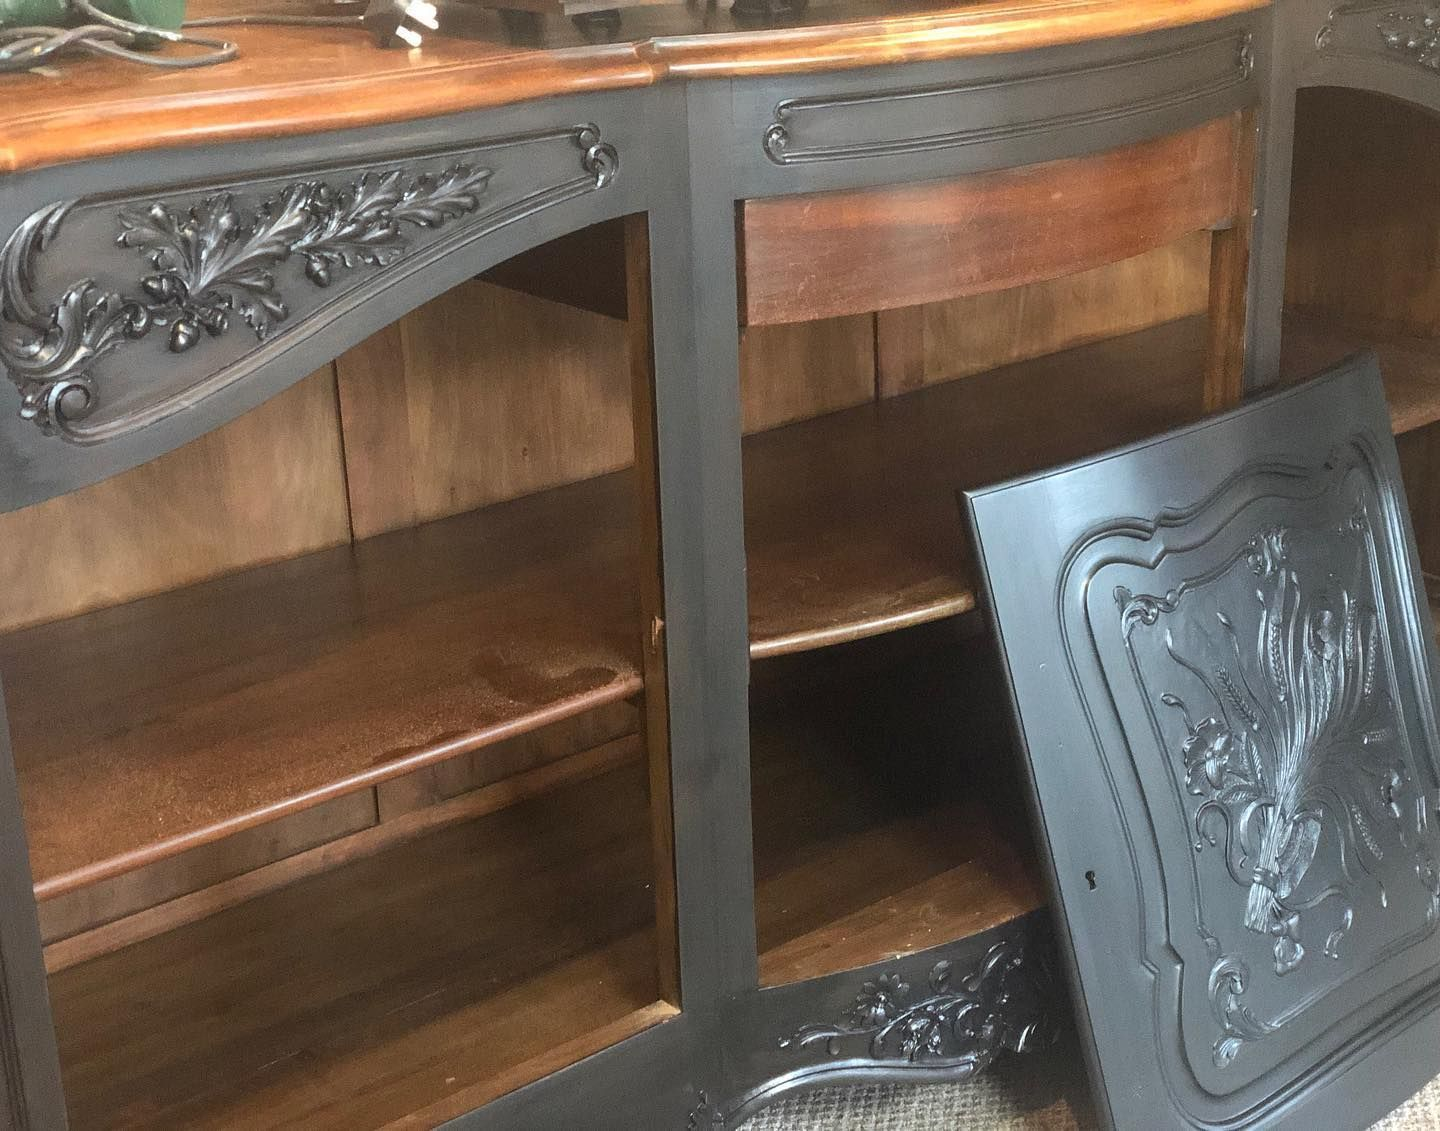 Working on another glorious beast and the client has asked for @fusionmineralpaint #coalblack #blackglaze #goldhighlights #blackngold This is the first coat after some prep and it's going on like #silk #furnituremakeover #furnitureflip #furniturepainter #furniturepainters #furnitureunik #furnitureupcycle #paintedfurniture #paintingfurniture #smallbusiness #furniturepainterslife #frenchfurniture #revivedbysarah #homerevivalinteriors #paintitbeautiful #fusionmineralpaint